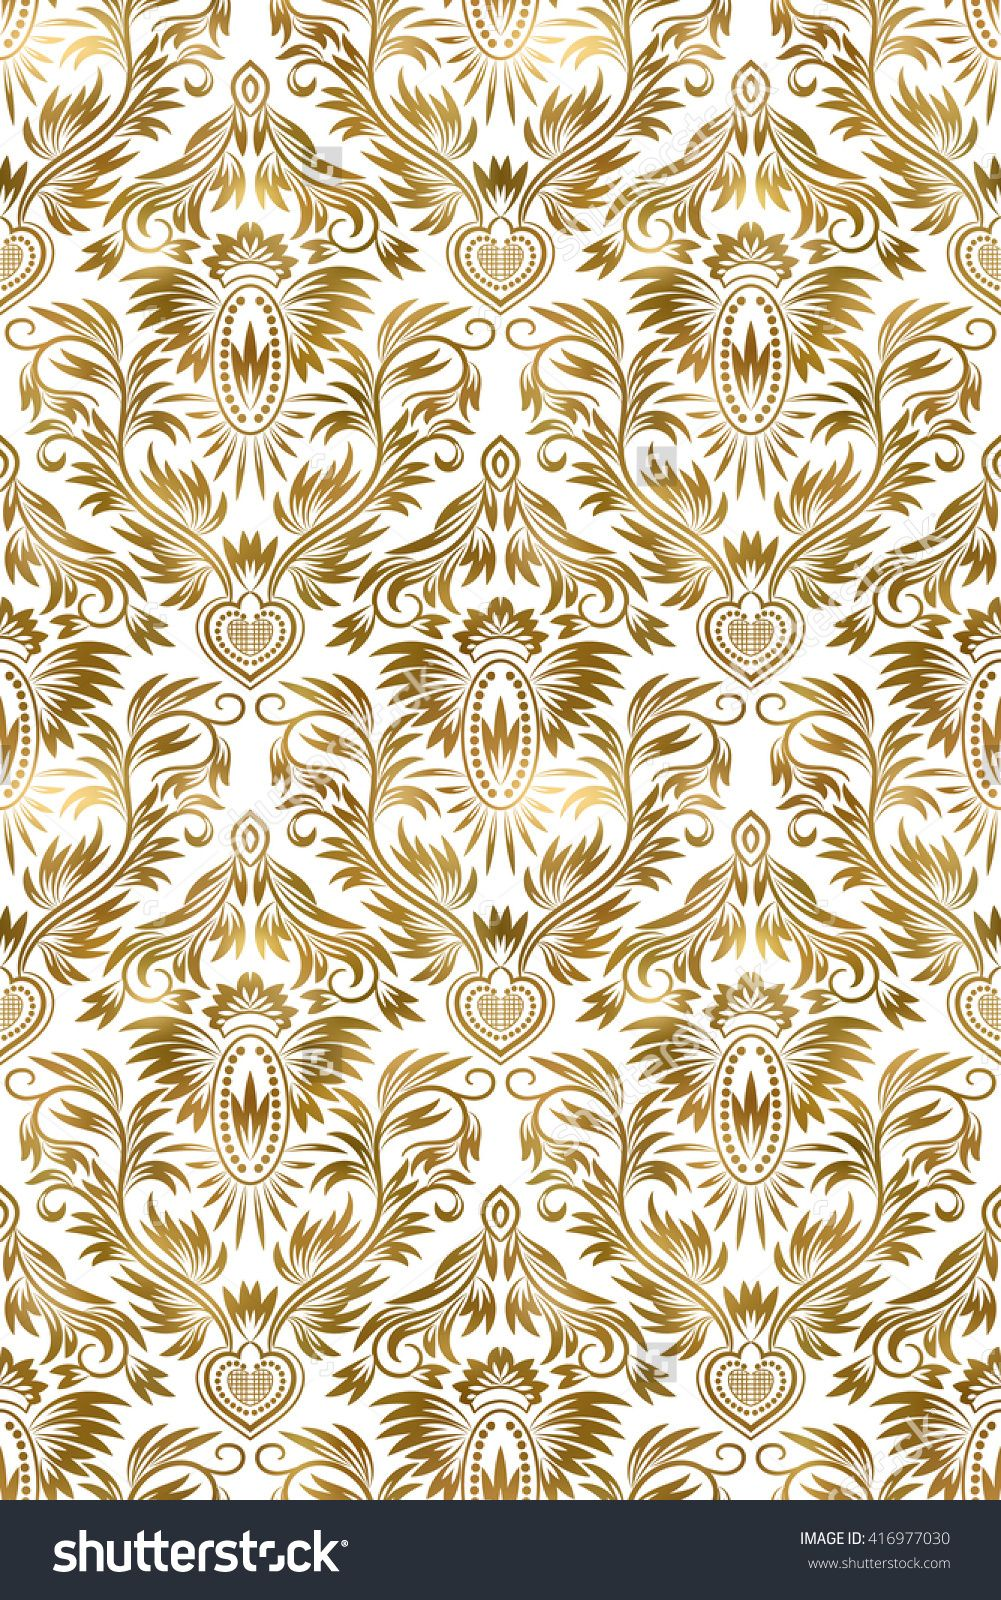 Golden White Vintage Seamless Pattern Gold Royal Classic Baroque Wallpaper